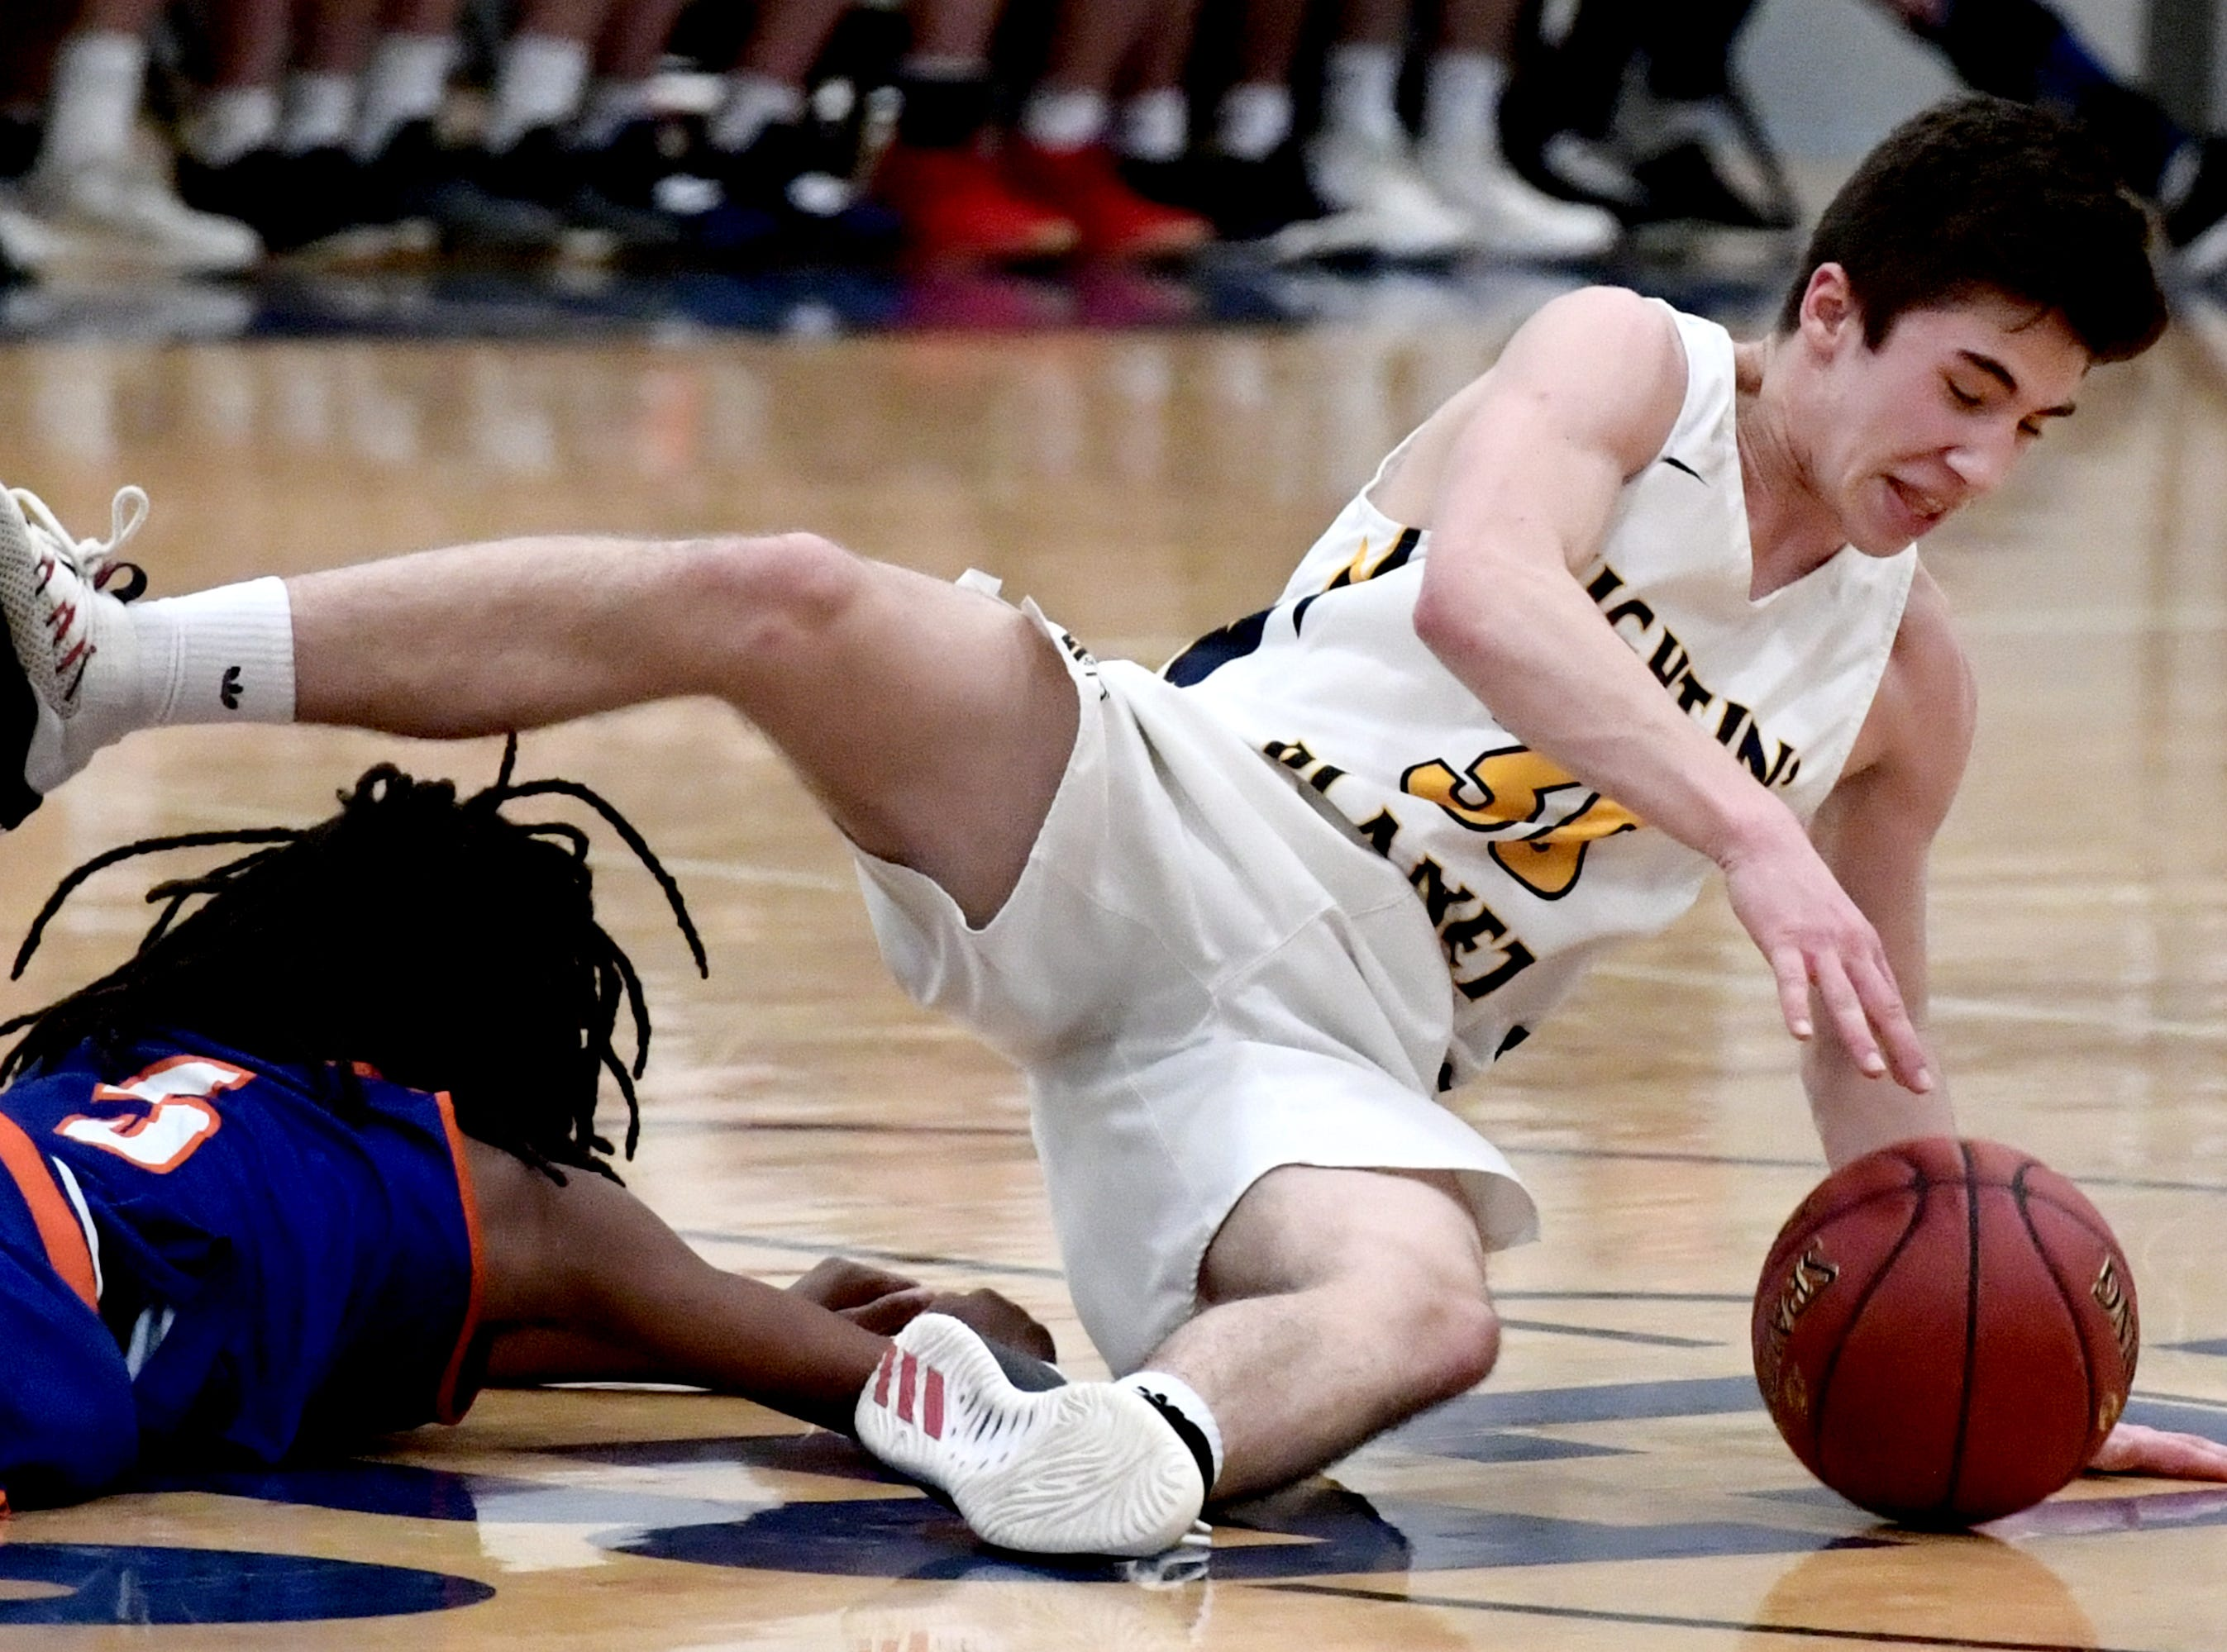 York High loses 60-59 to Mars in a PIAA Class 5-A second-round state boys' basketball playoff game at Holidaysburg High School in Blair County Tuesday, March 12, 2019. Bill Kalina photo